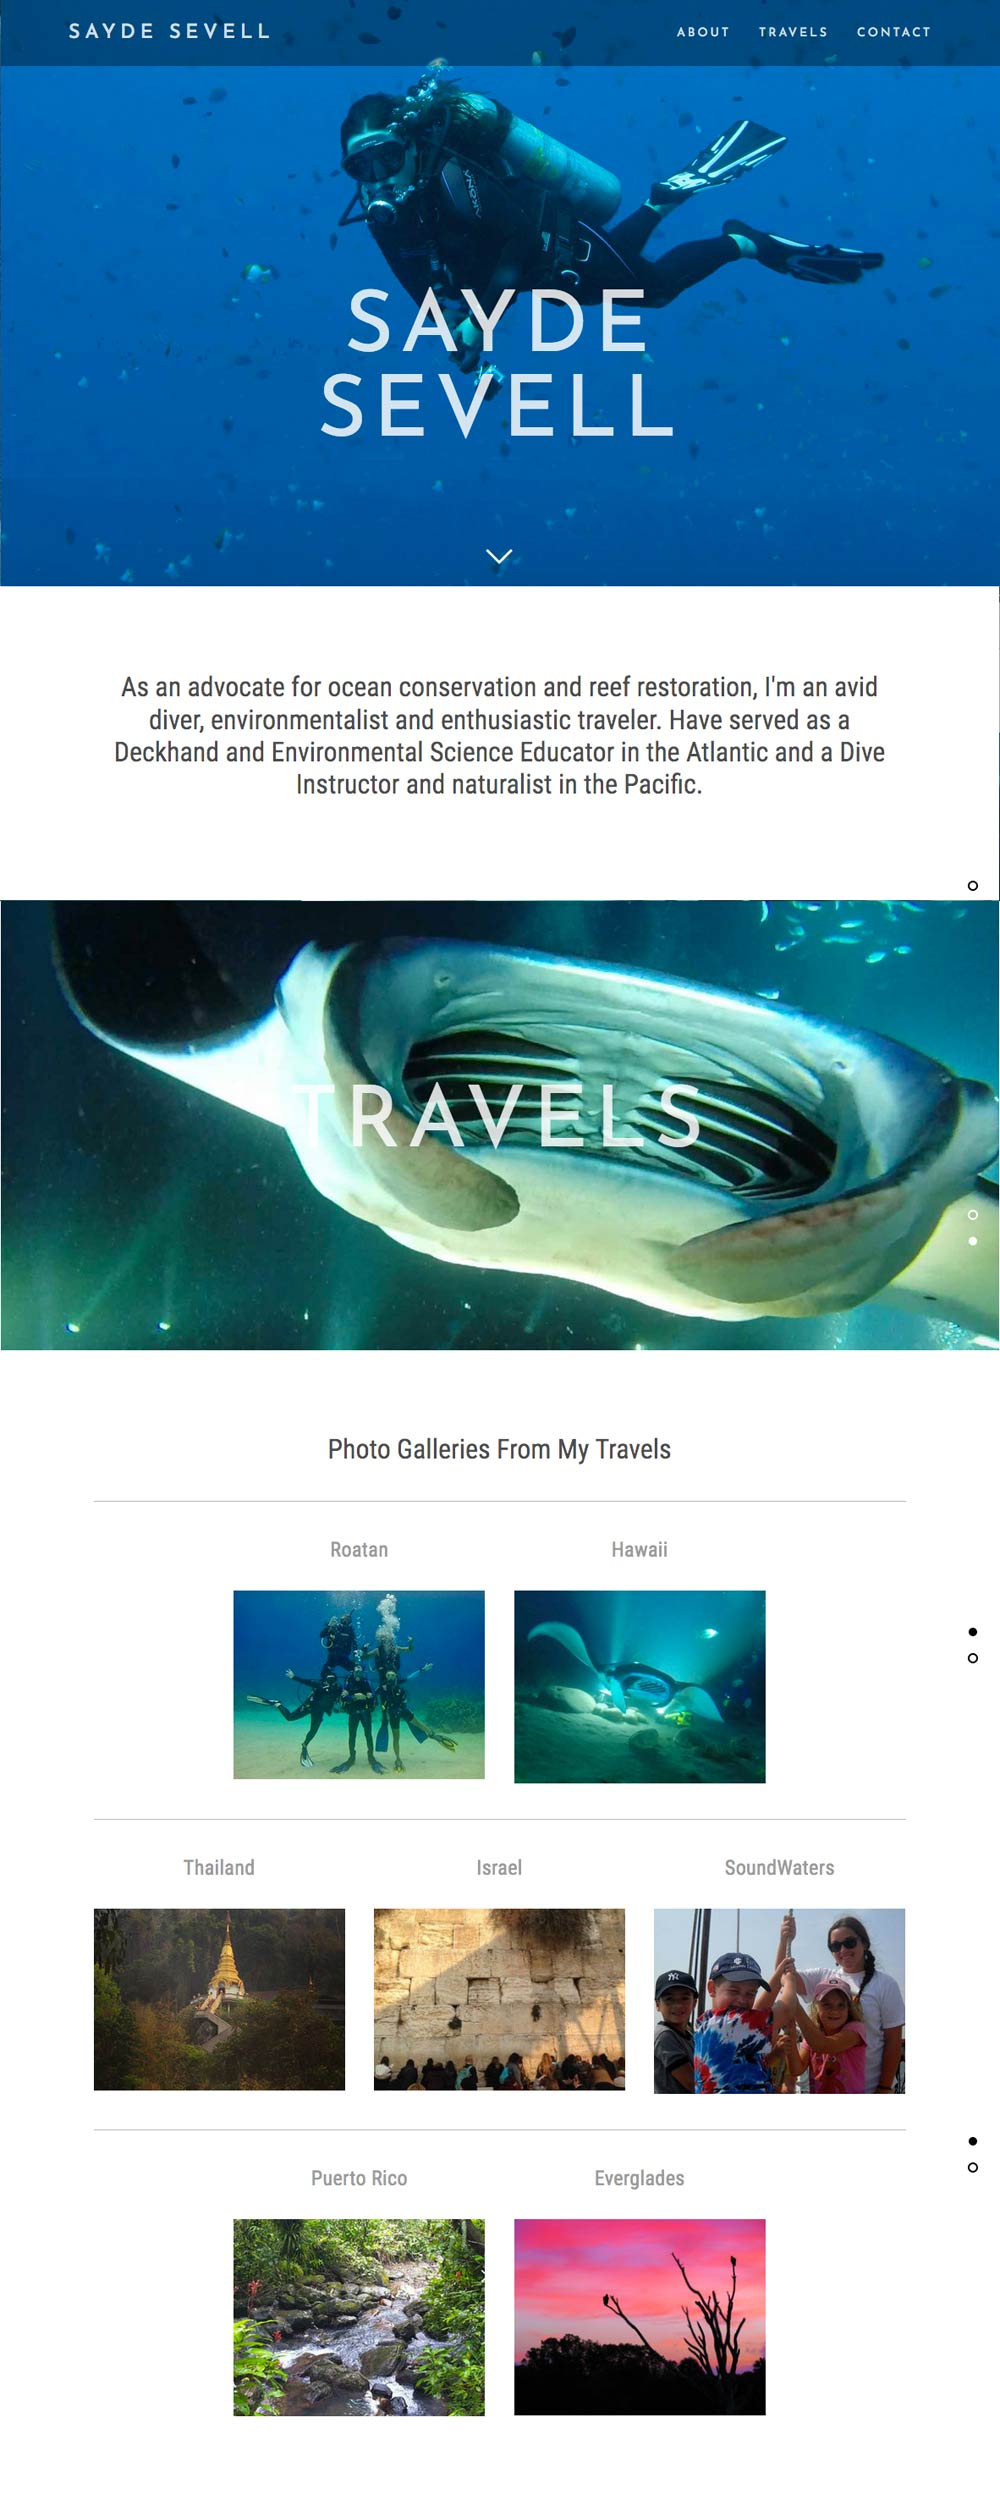 dive instructor home page by Columbus SEO firm Sevell.